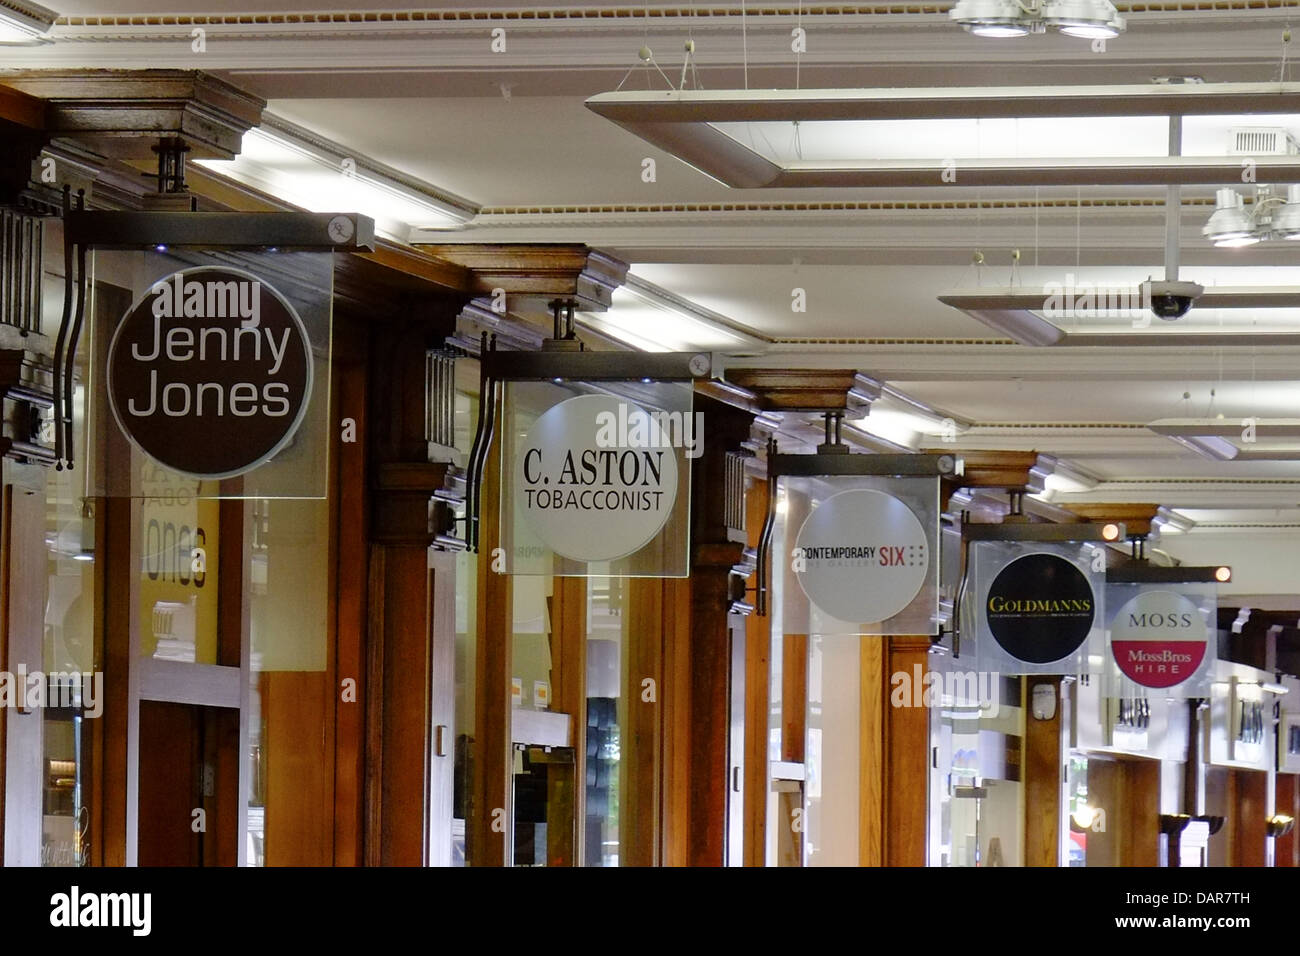 England, Manchester, detail of shop signs underneath The royal Exchange Theatre - Stock Image